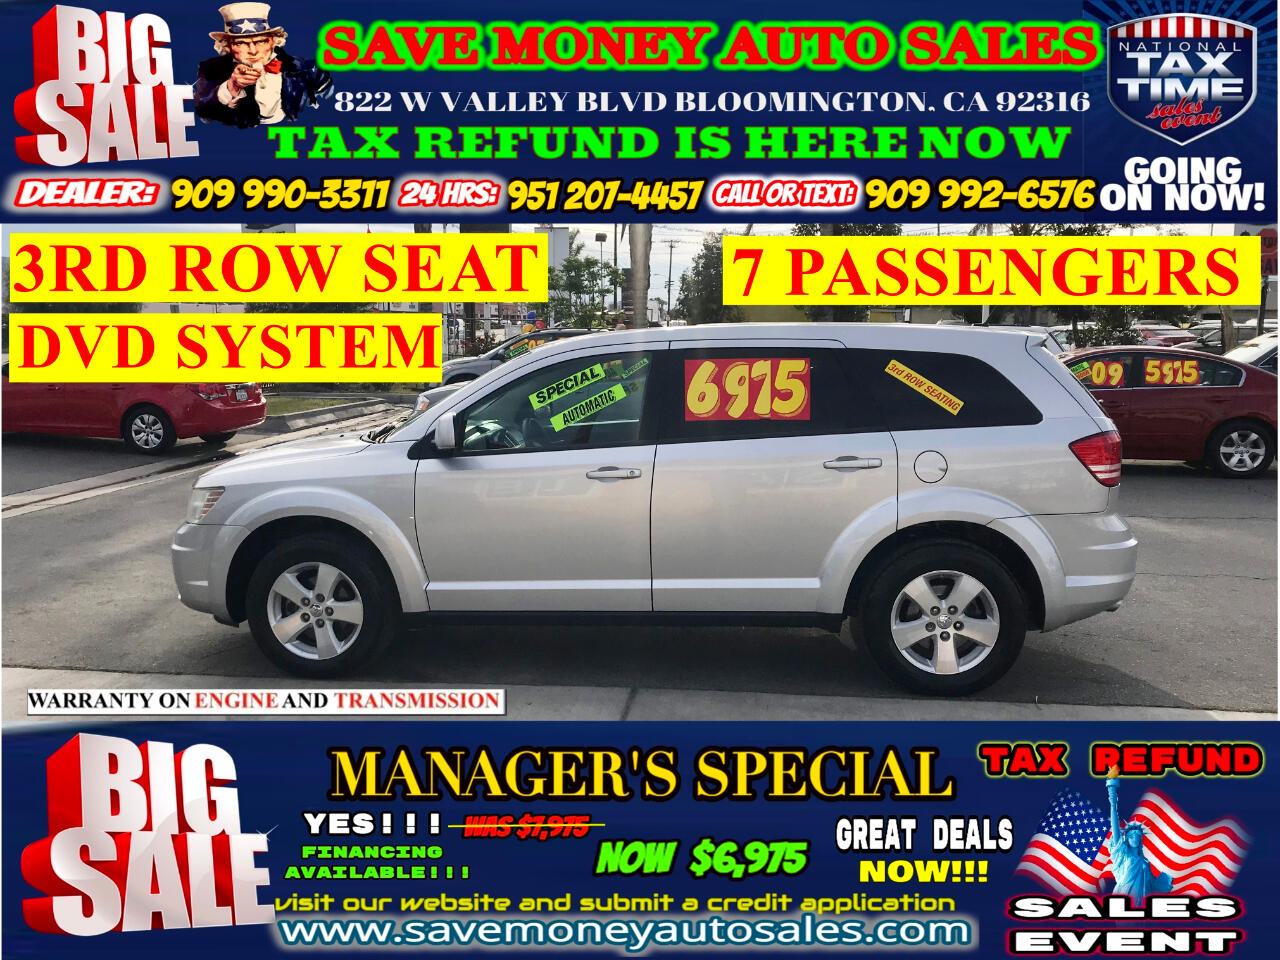 2009 Dodge Journey EDITION SXT>BACK UP CAMERA + BLUETOOTH + 3RD ROW S